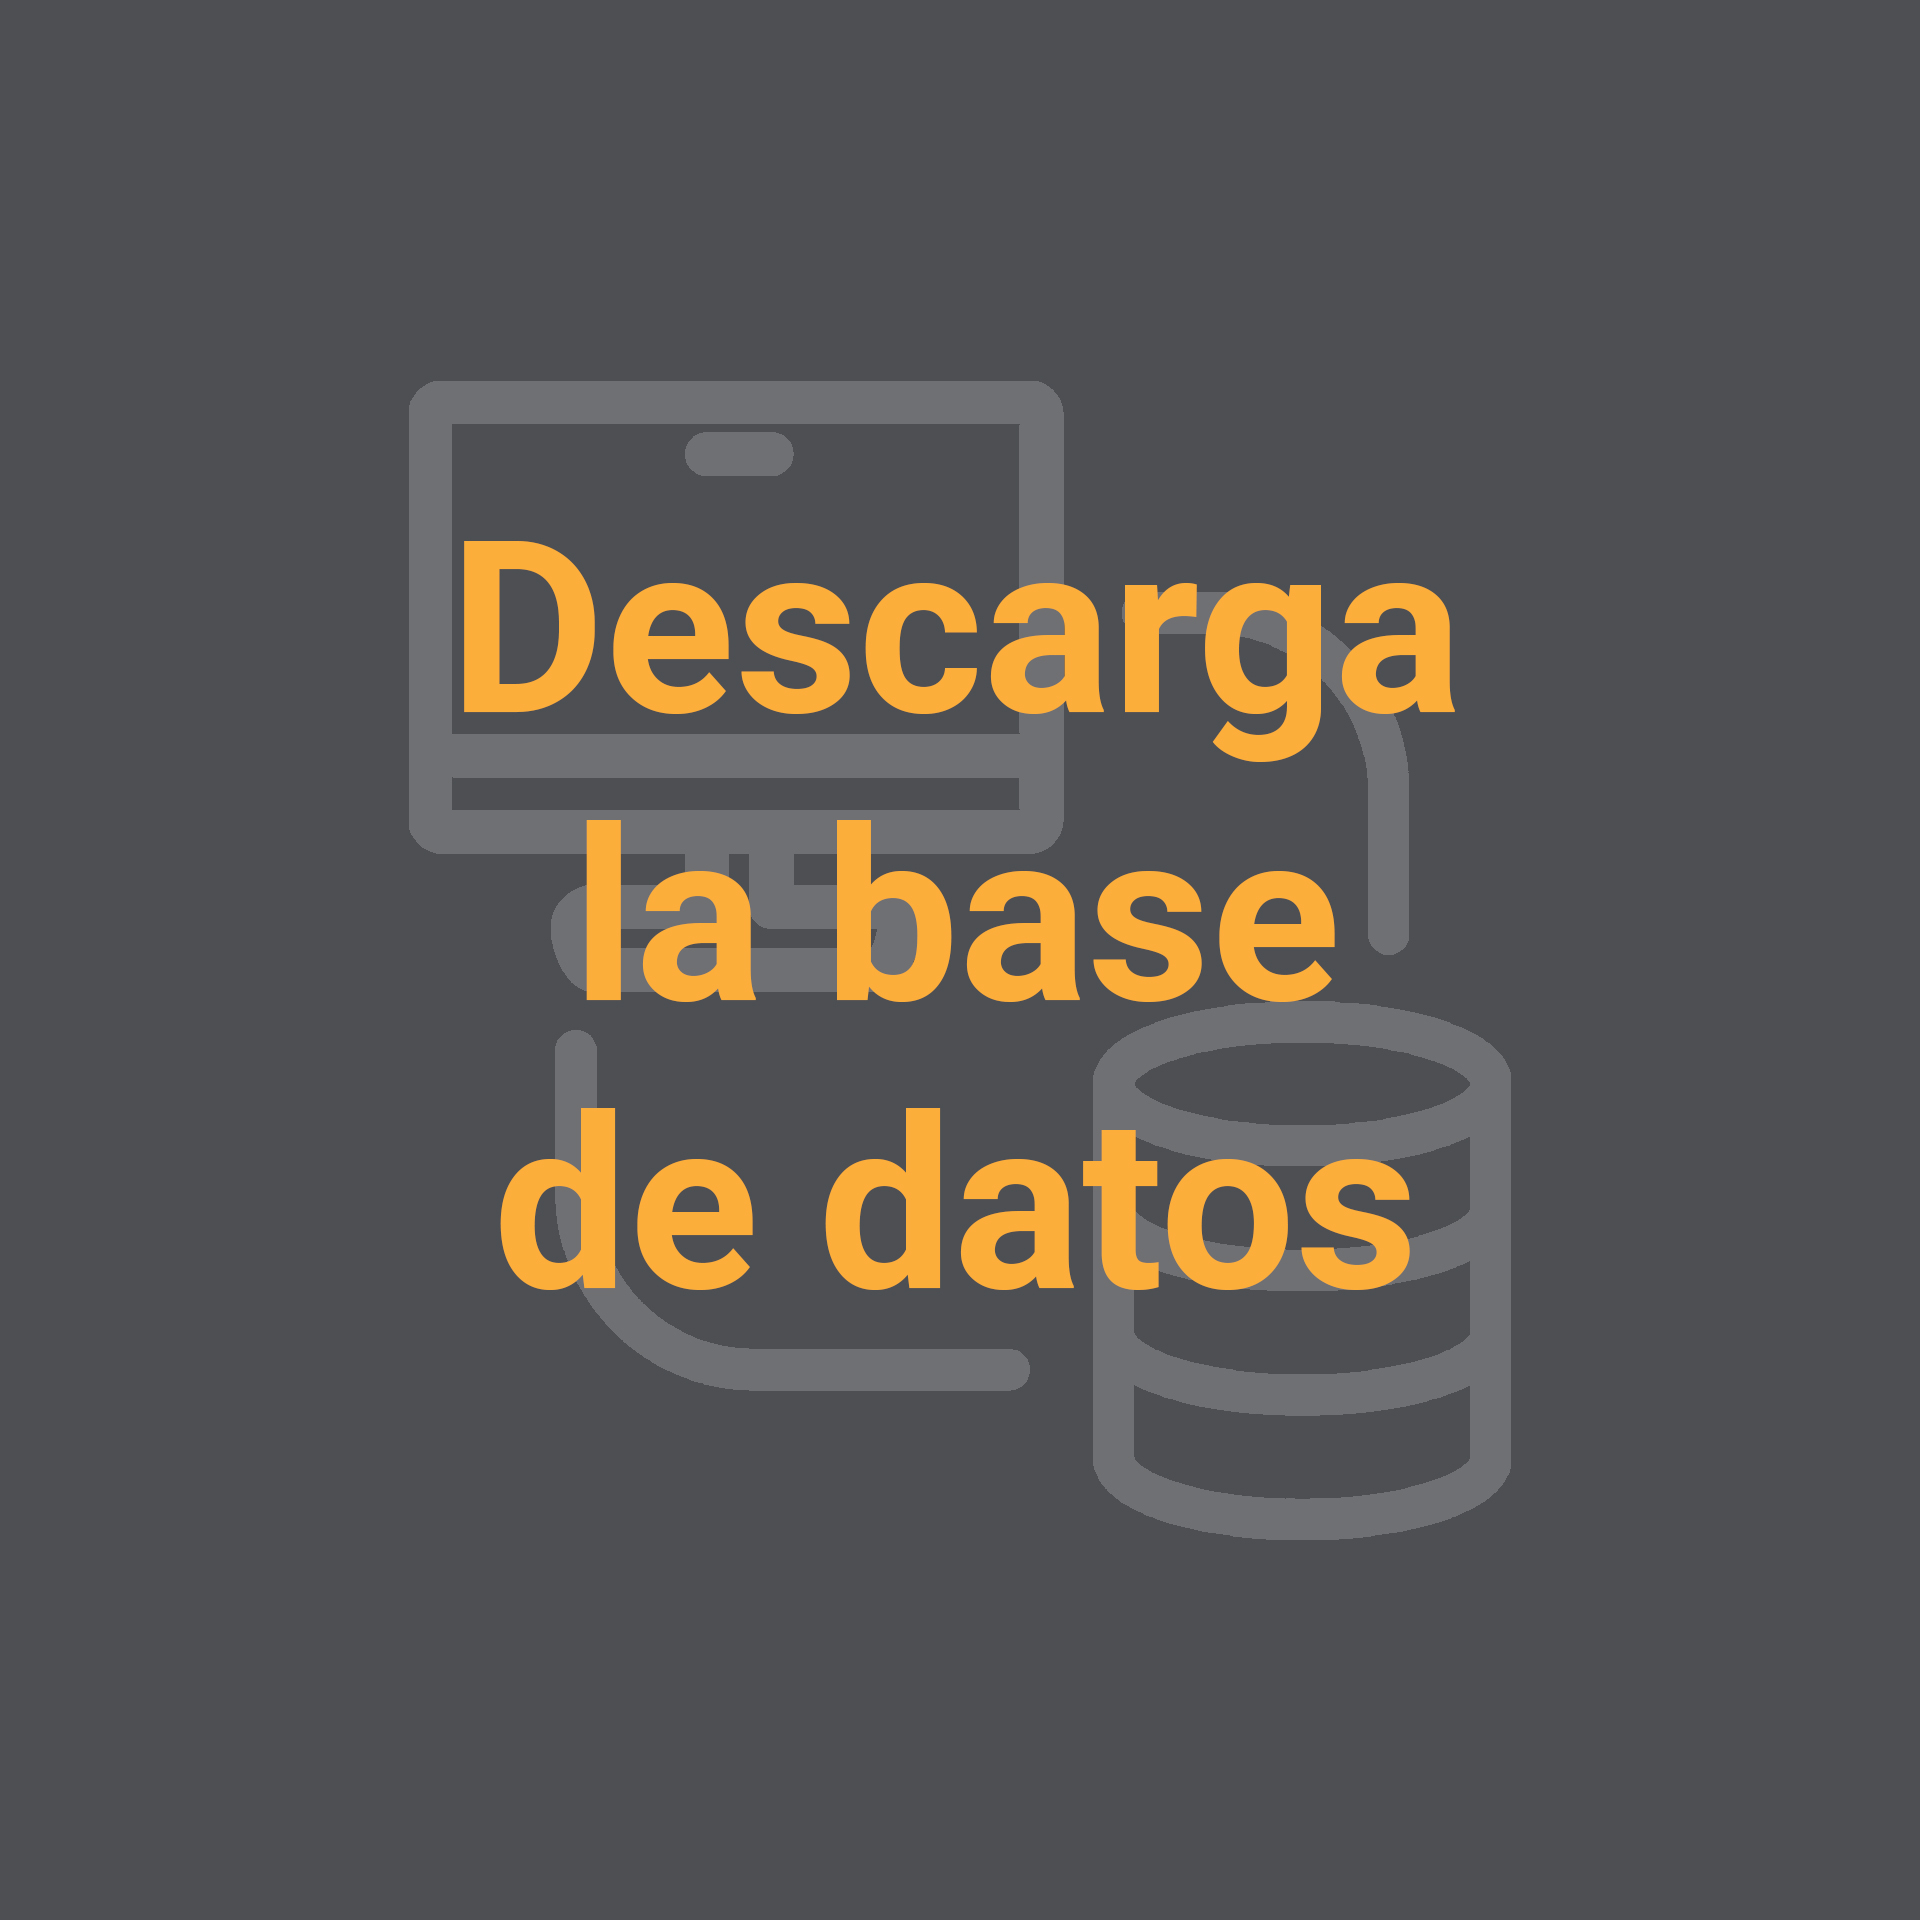 descarga-base-datos.jpg